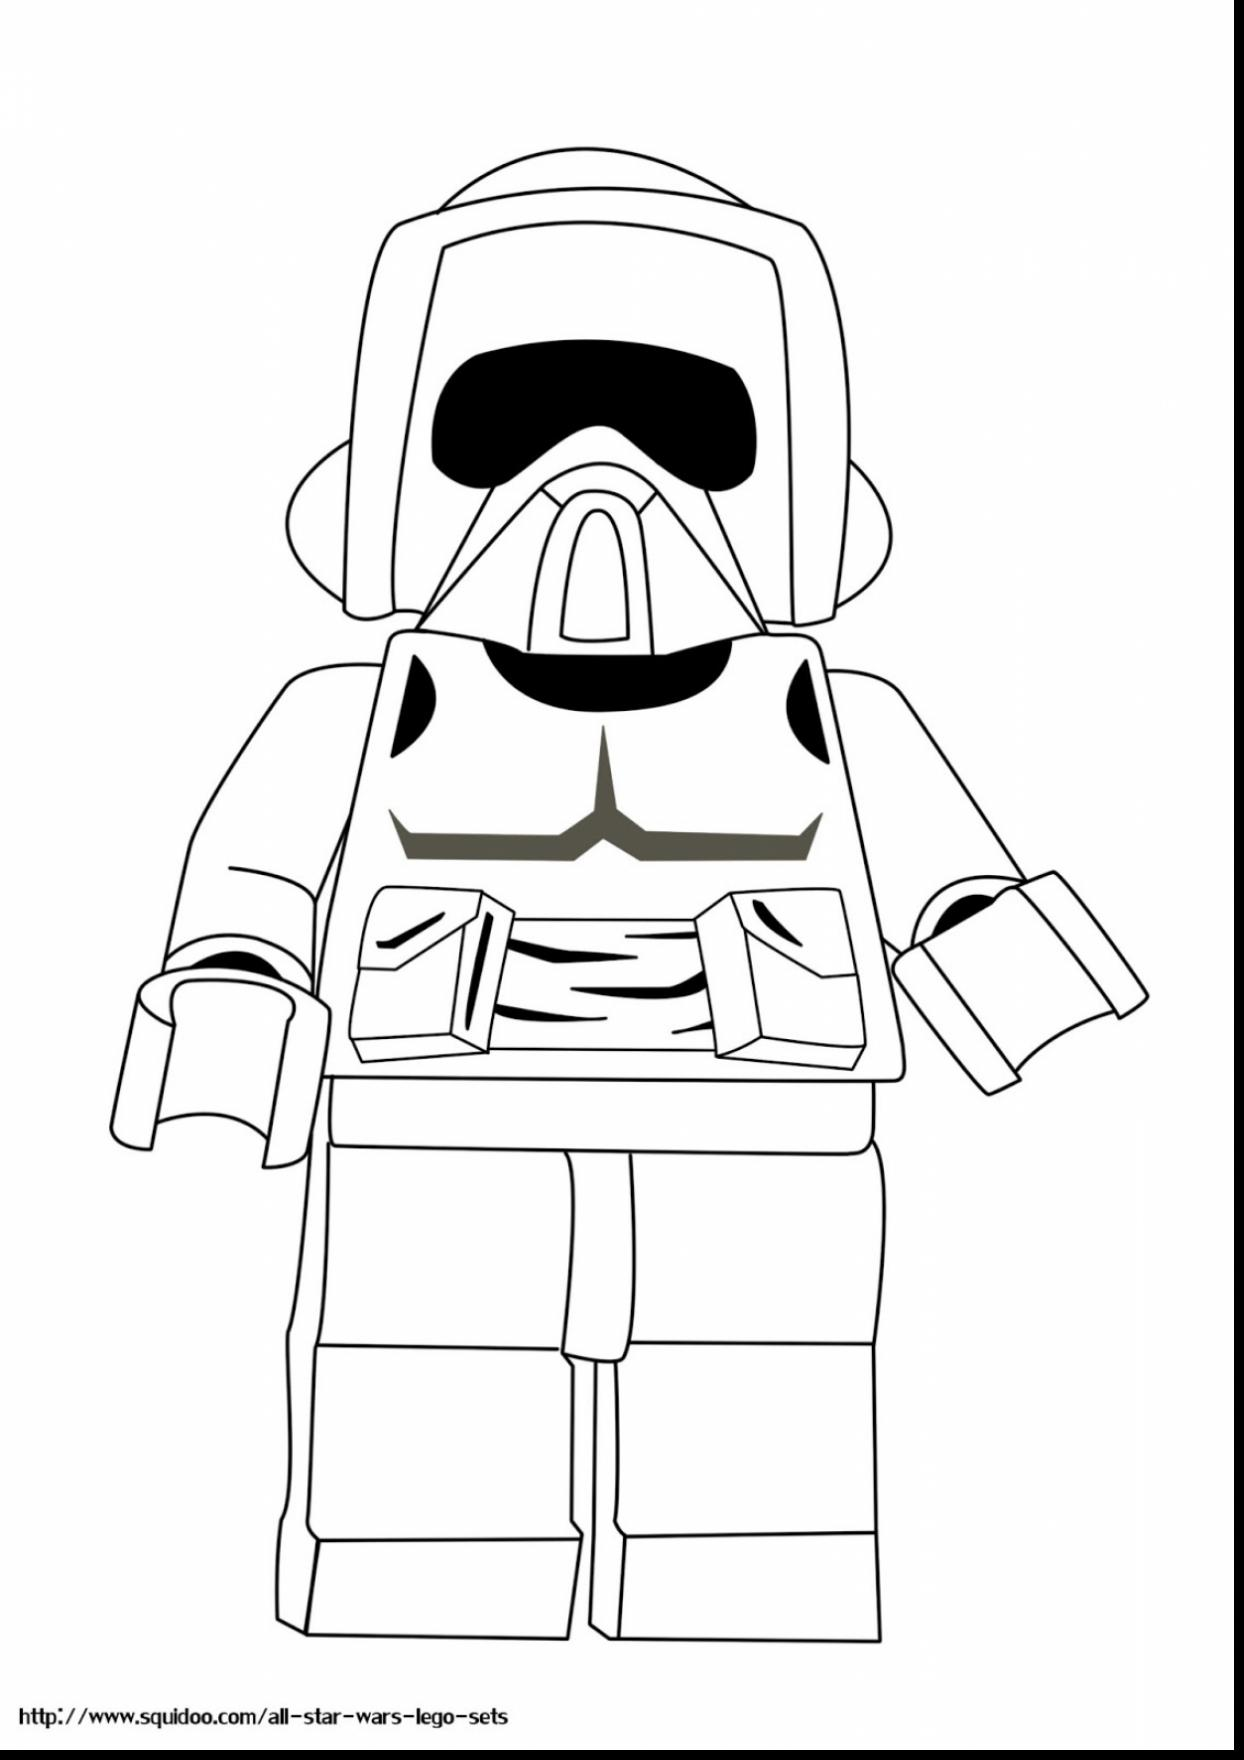 Marvelous star wars captain rex coloring pages with star wars .